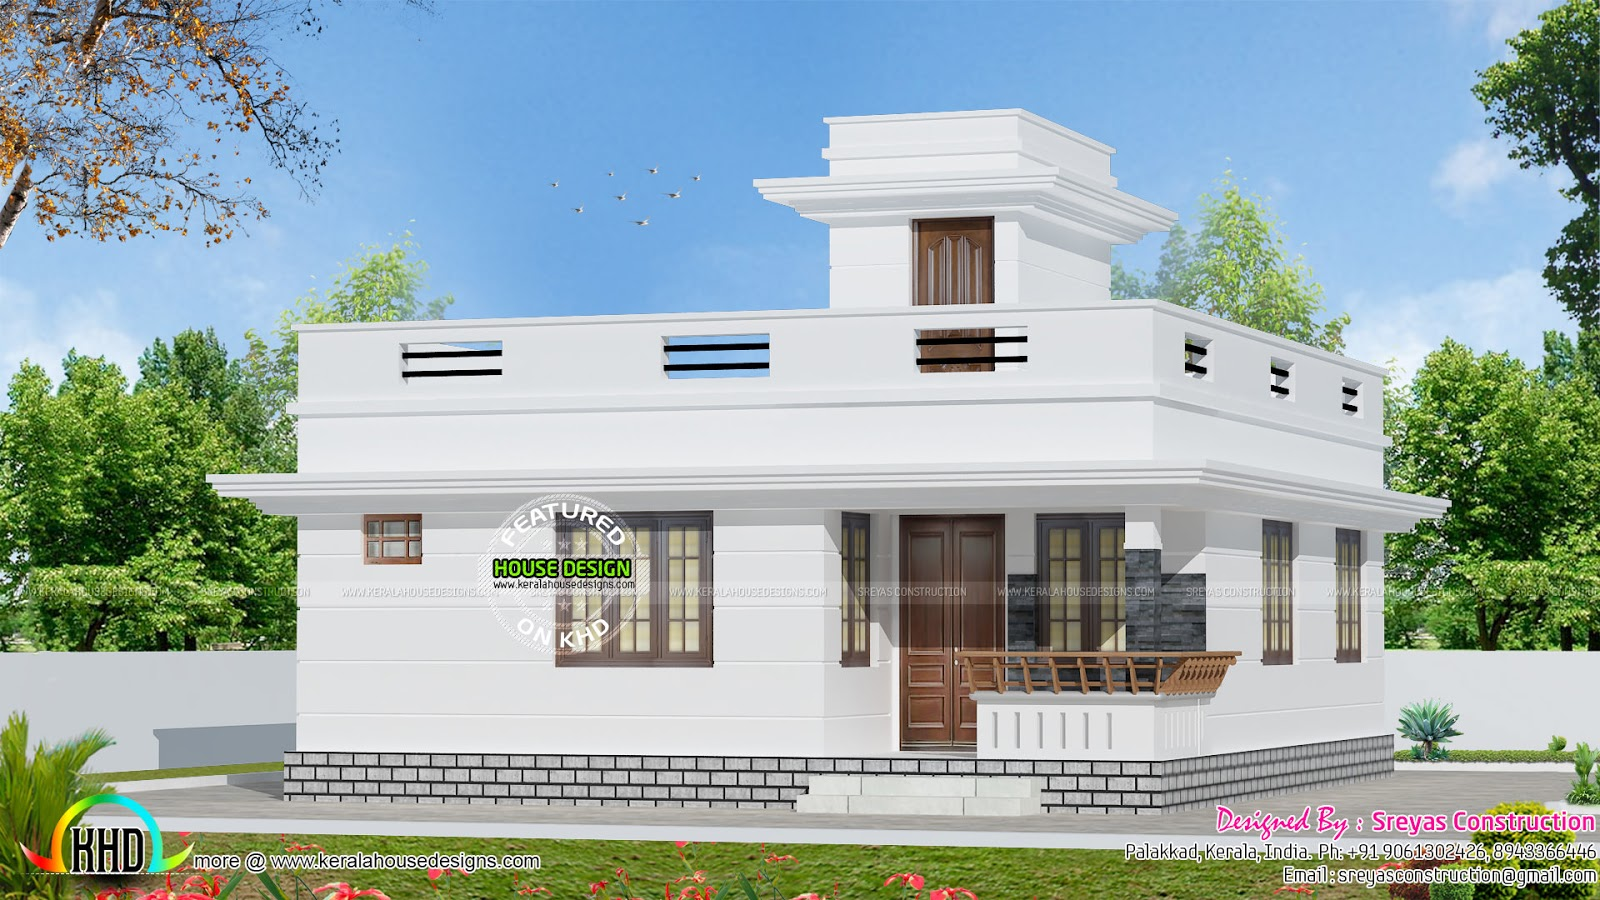 882 sq ft small house architecture kerala home design for Small house design in nepal